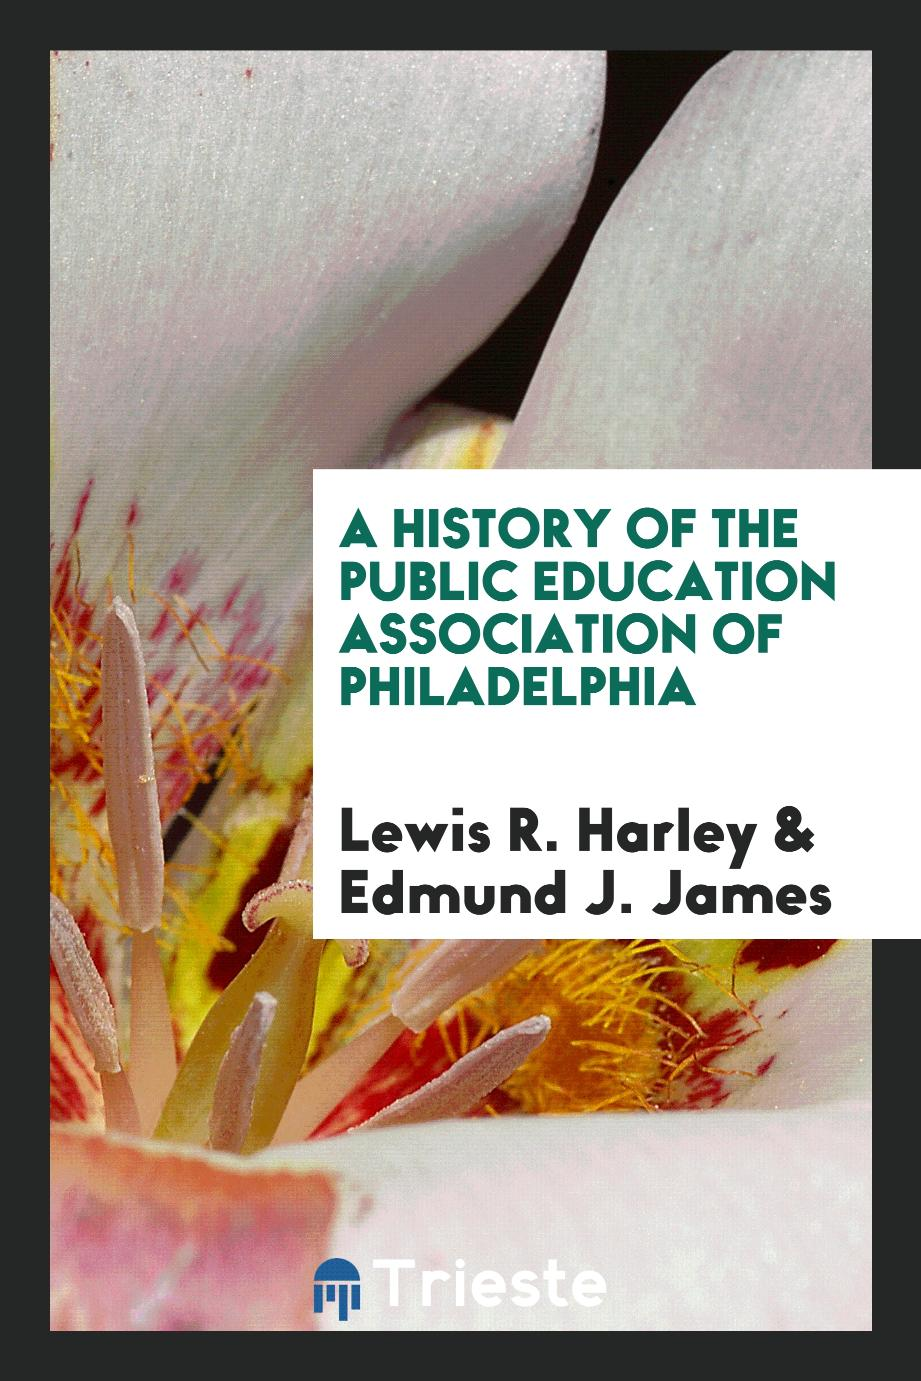 A History of the Public Education Association of Philadelphia